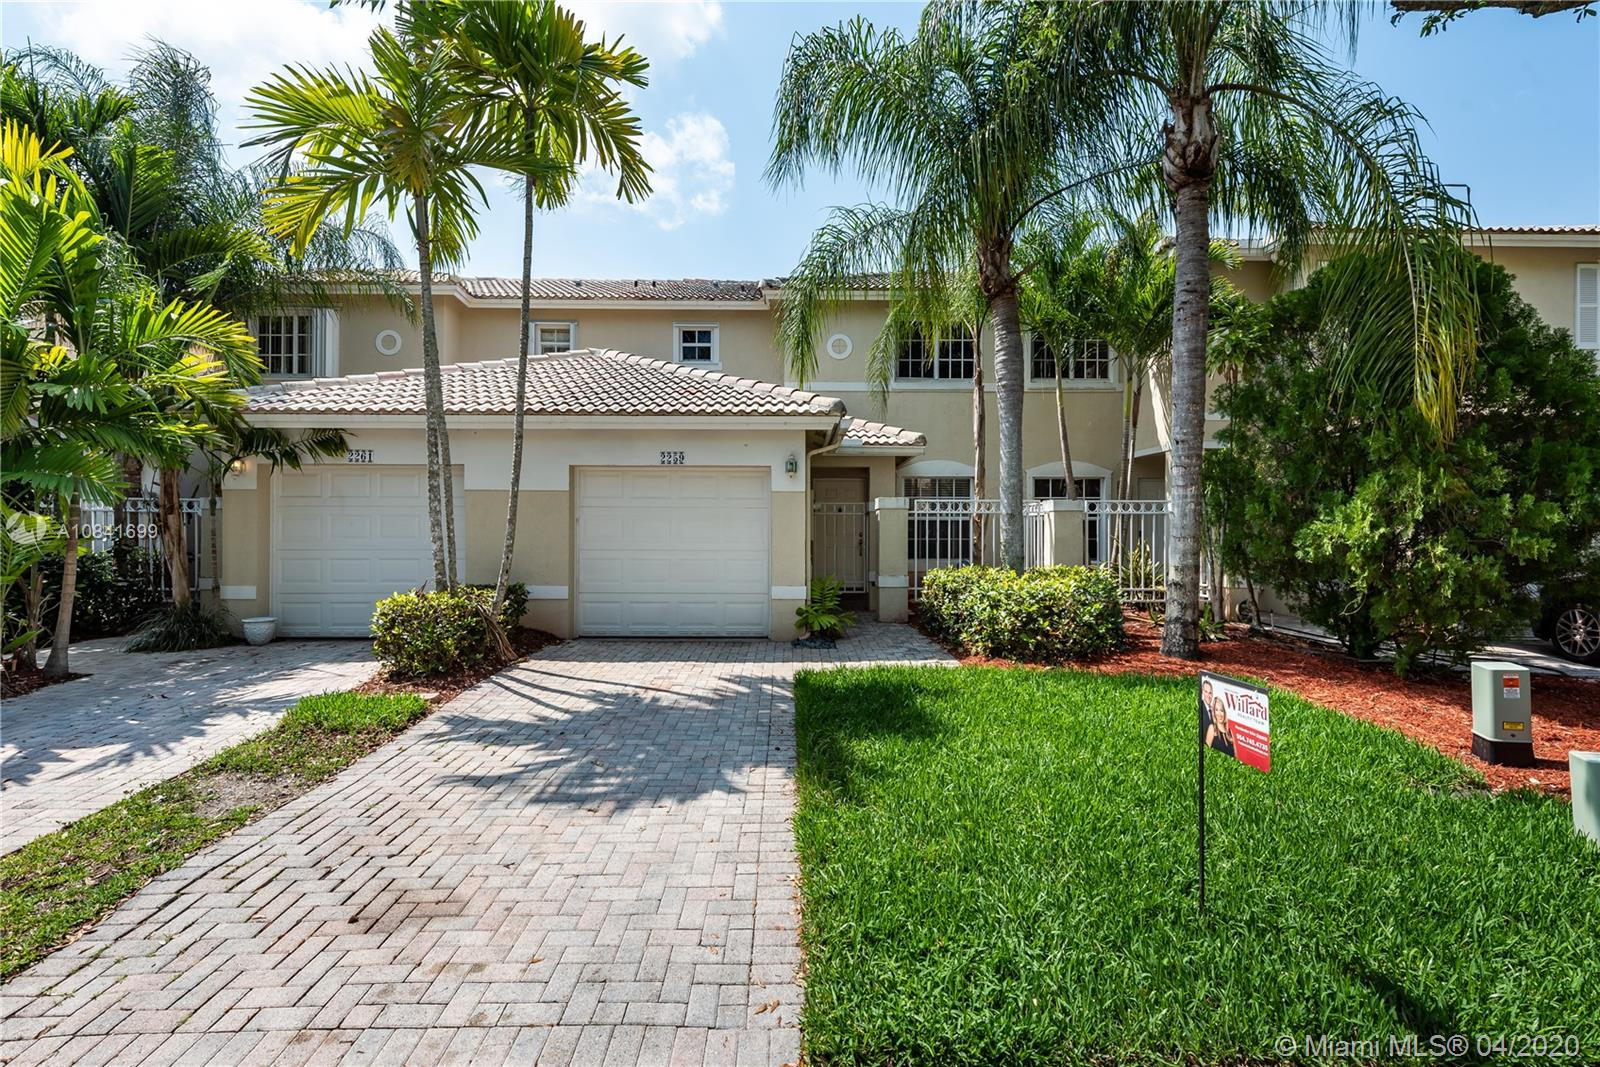 "Contemporary 2 Bed, 2.5 Bath, BRIDGEPORT Model Townhome in The Landings@Pembroke Isles. Featuring: Open Kitchen, White Cabinetry, SS Appliances, Serving Bar & Pantry, Spacious Master Suite, His & Hers Closets, Updated Baths, Dual Sink Vanity, Roman Soaking Tub, Modern Lighting, Bamboo Wood & Tile Flooring, NEWER A/C, W/H and FULL SIZE WASHER/DRYER, Private Fenced Patio and Tropical Landscaping.  Residents of Pembroke Isles Enjoy: Fitness Center, Aerobics, Saunas, Tennis, Racquetball, Basketball, Soccer, Beach Volleyball, Swimming Pools, Jacuzzis, Fishing Piers, Boat Ramp, Walking/Biking Trails, Covered Picnic Areas, Children's Playground & Tot Lot.  HOA Includes: Security, Landscaping, Cable, Internet & Alarm Monitoring.  Convenient to Shopping, Dining, Travel and ""A"" Rated Schools."